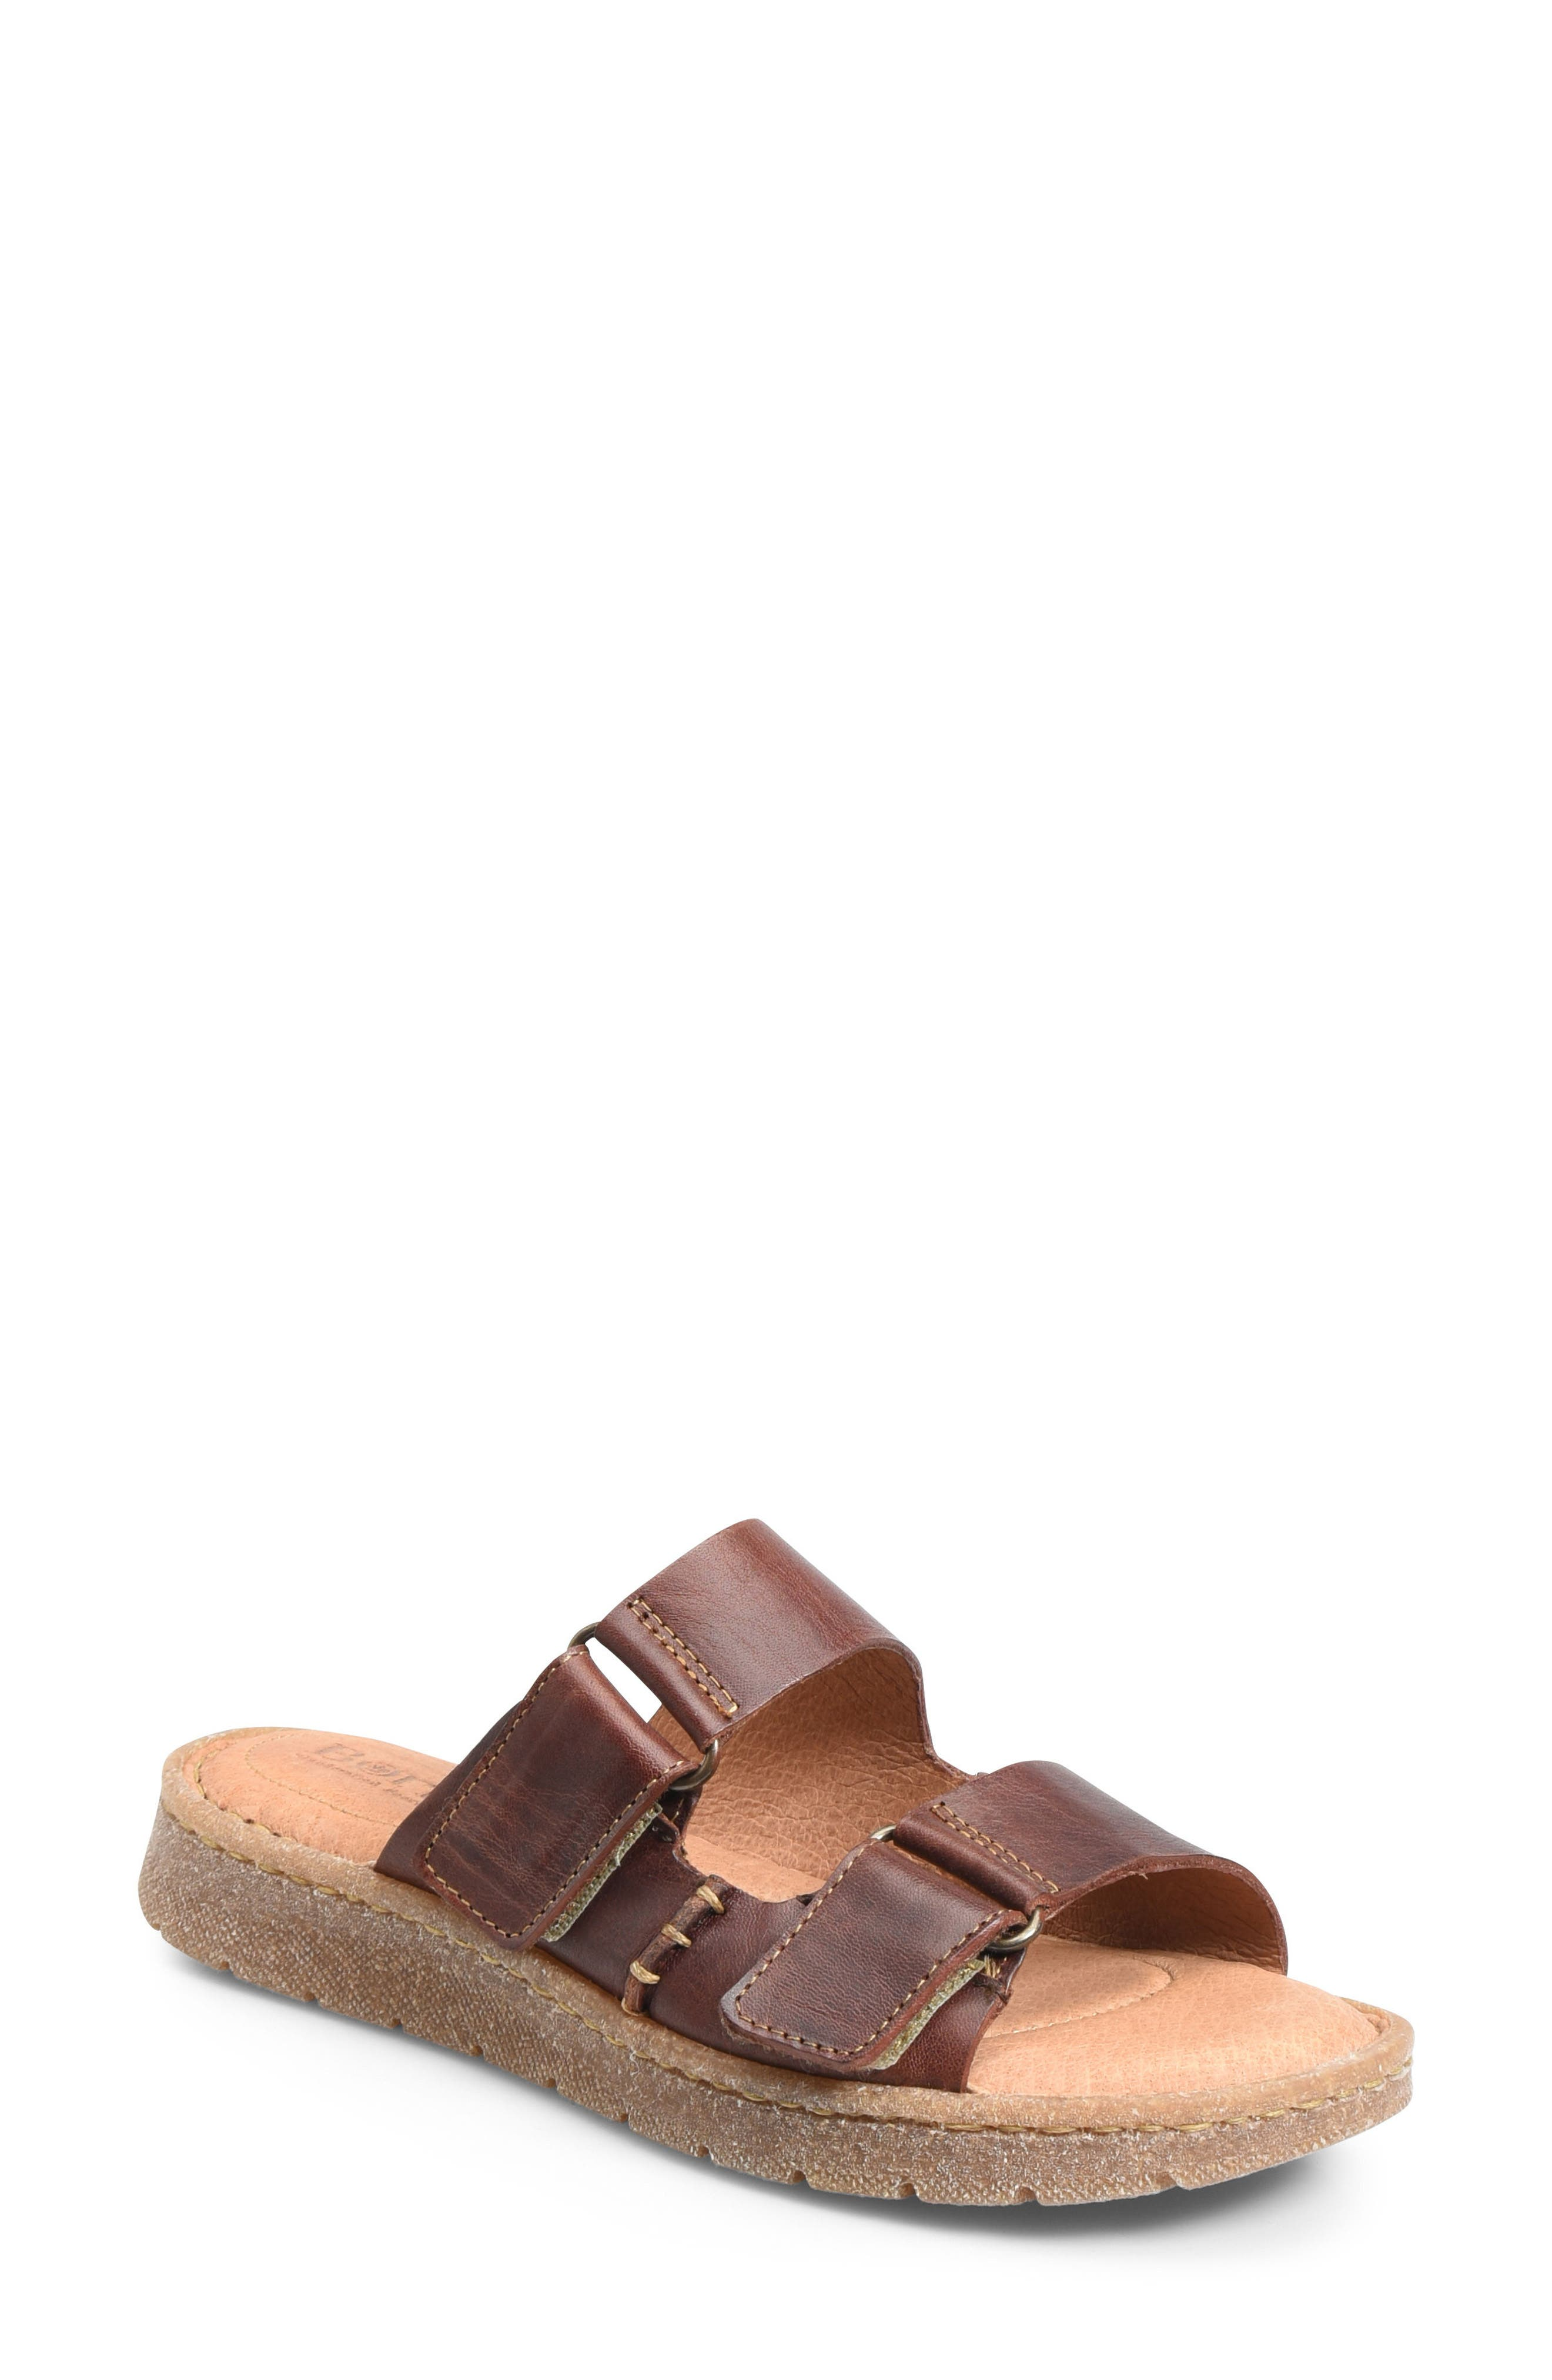 BØRN Dominica Sandal, Main, color, RUST LEATHER